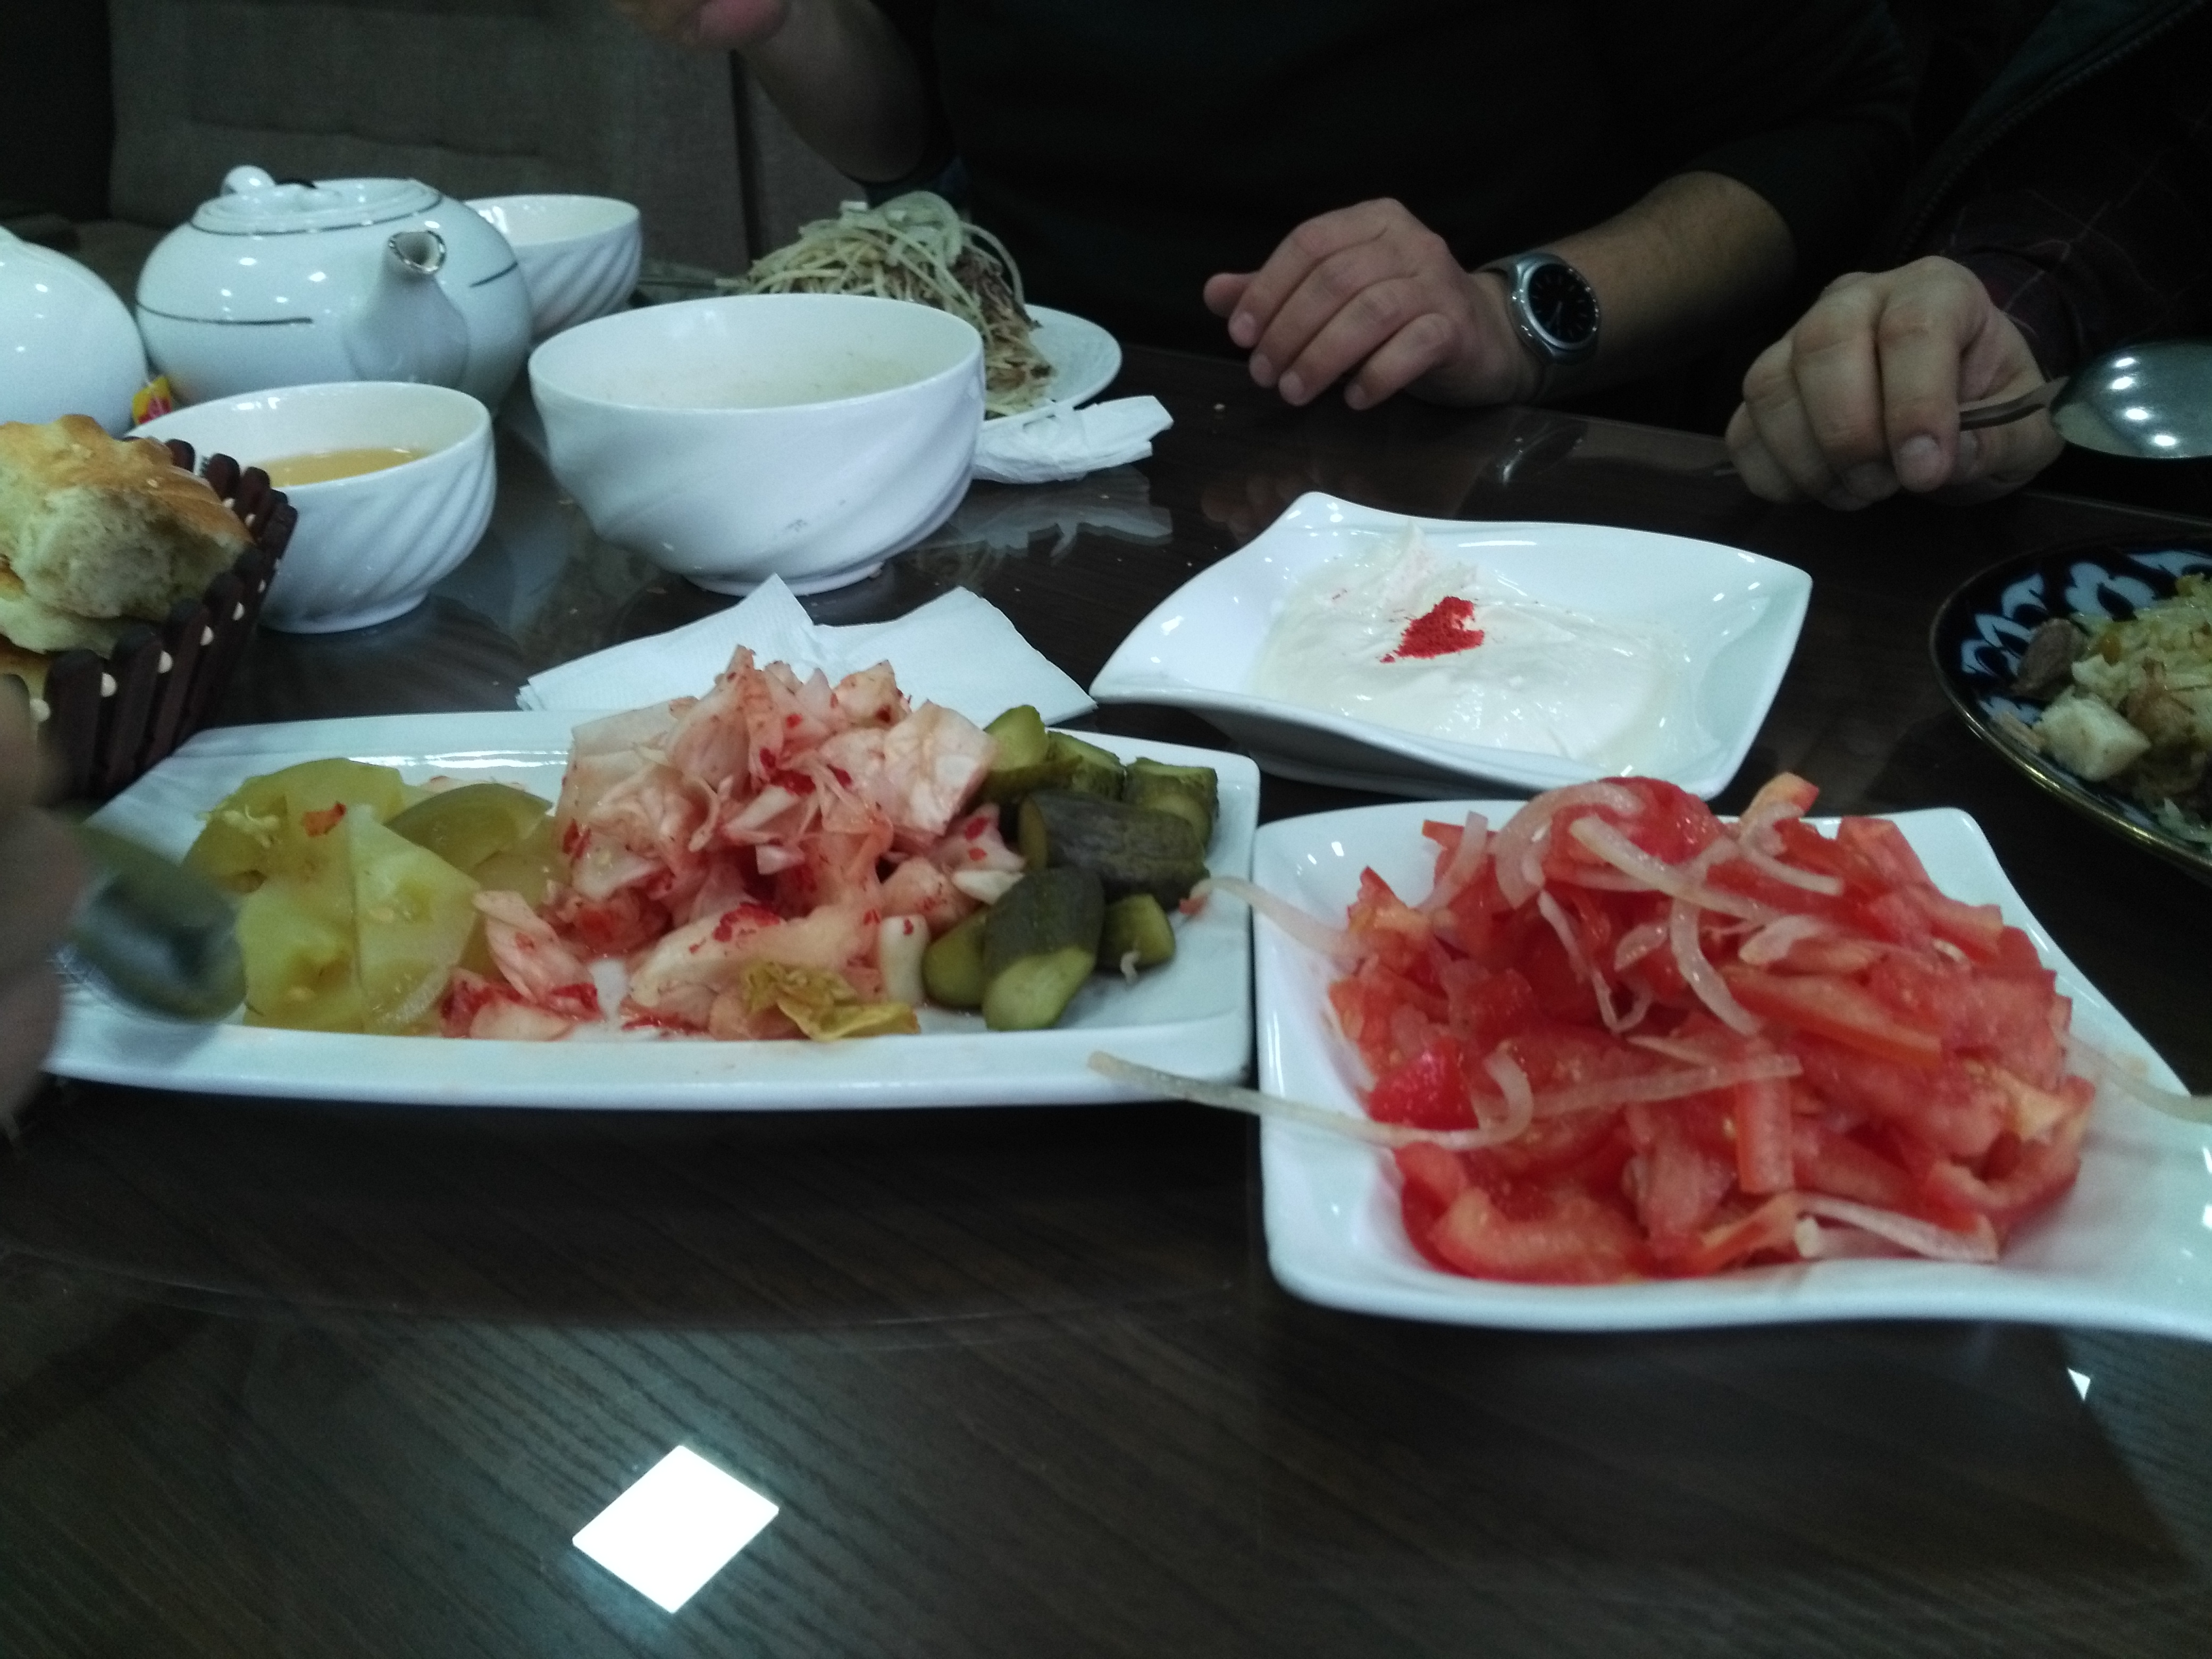 Achichu (tomato salad), tuzlama (pickle salad), suzman (yogurt dip), naryn (stringy thing in the top left).